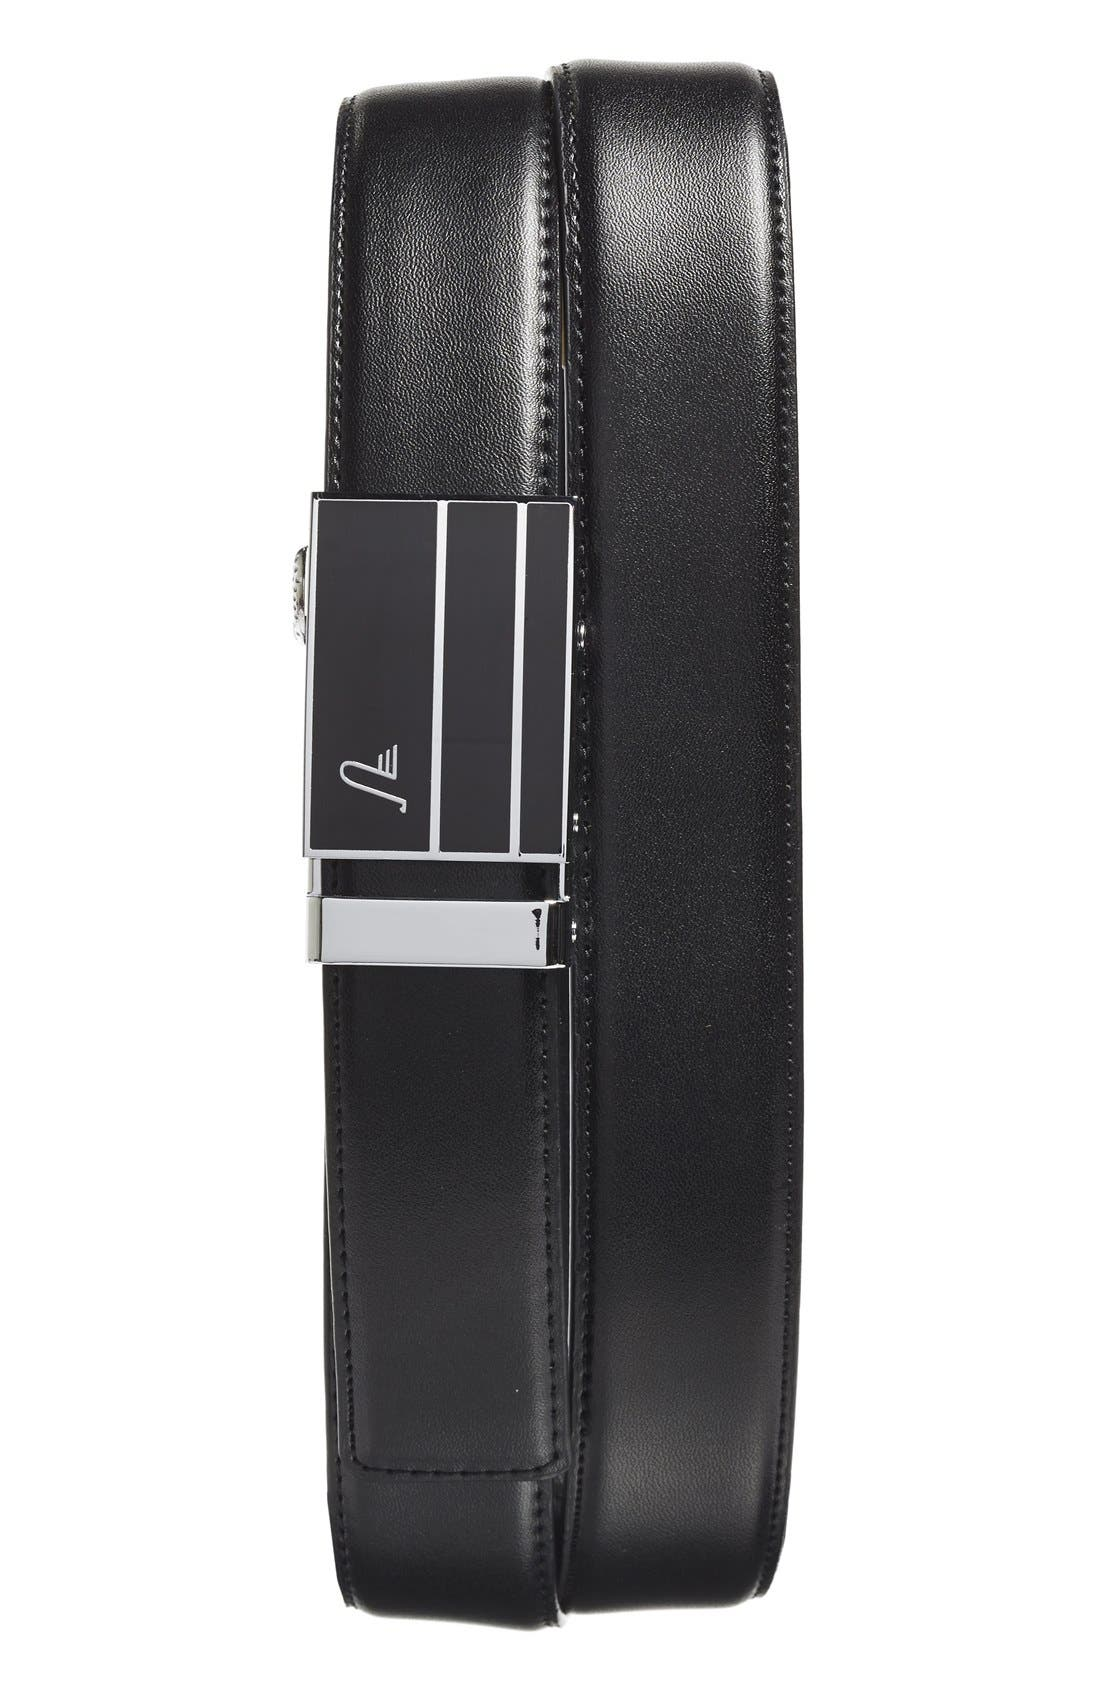 MISSION BELT Black Magic Leather Belt